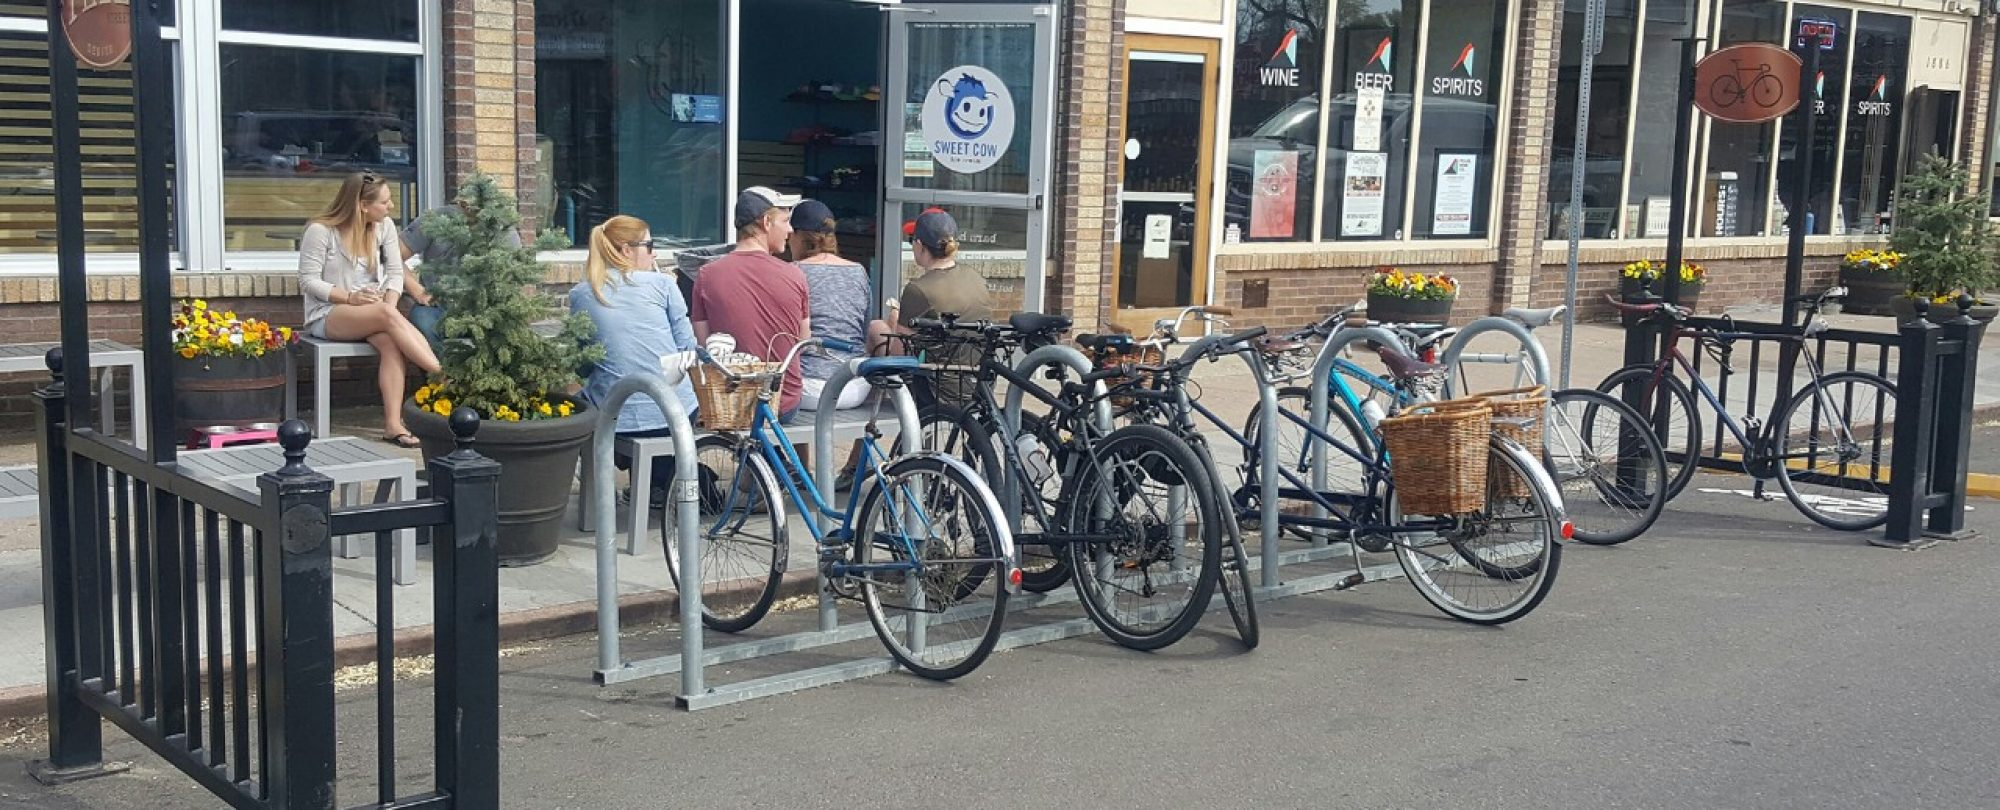 bike corral with parked bicycles outside of ice cream shop, with patrons using sidewalk seating